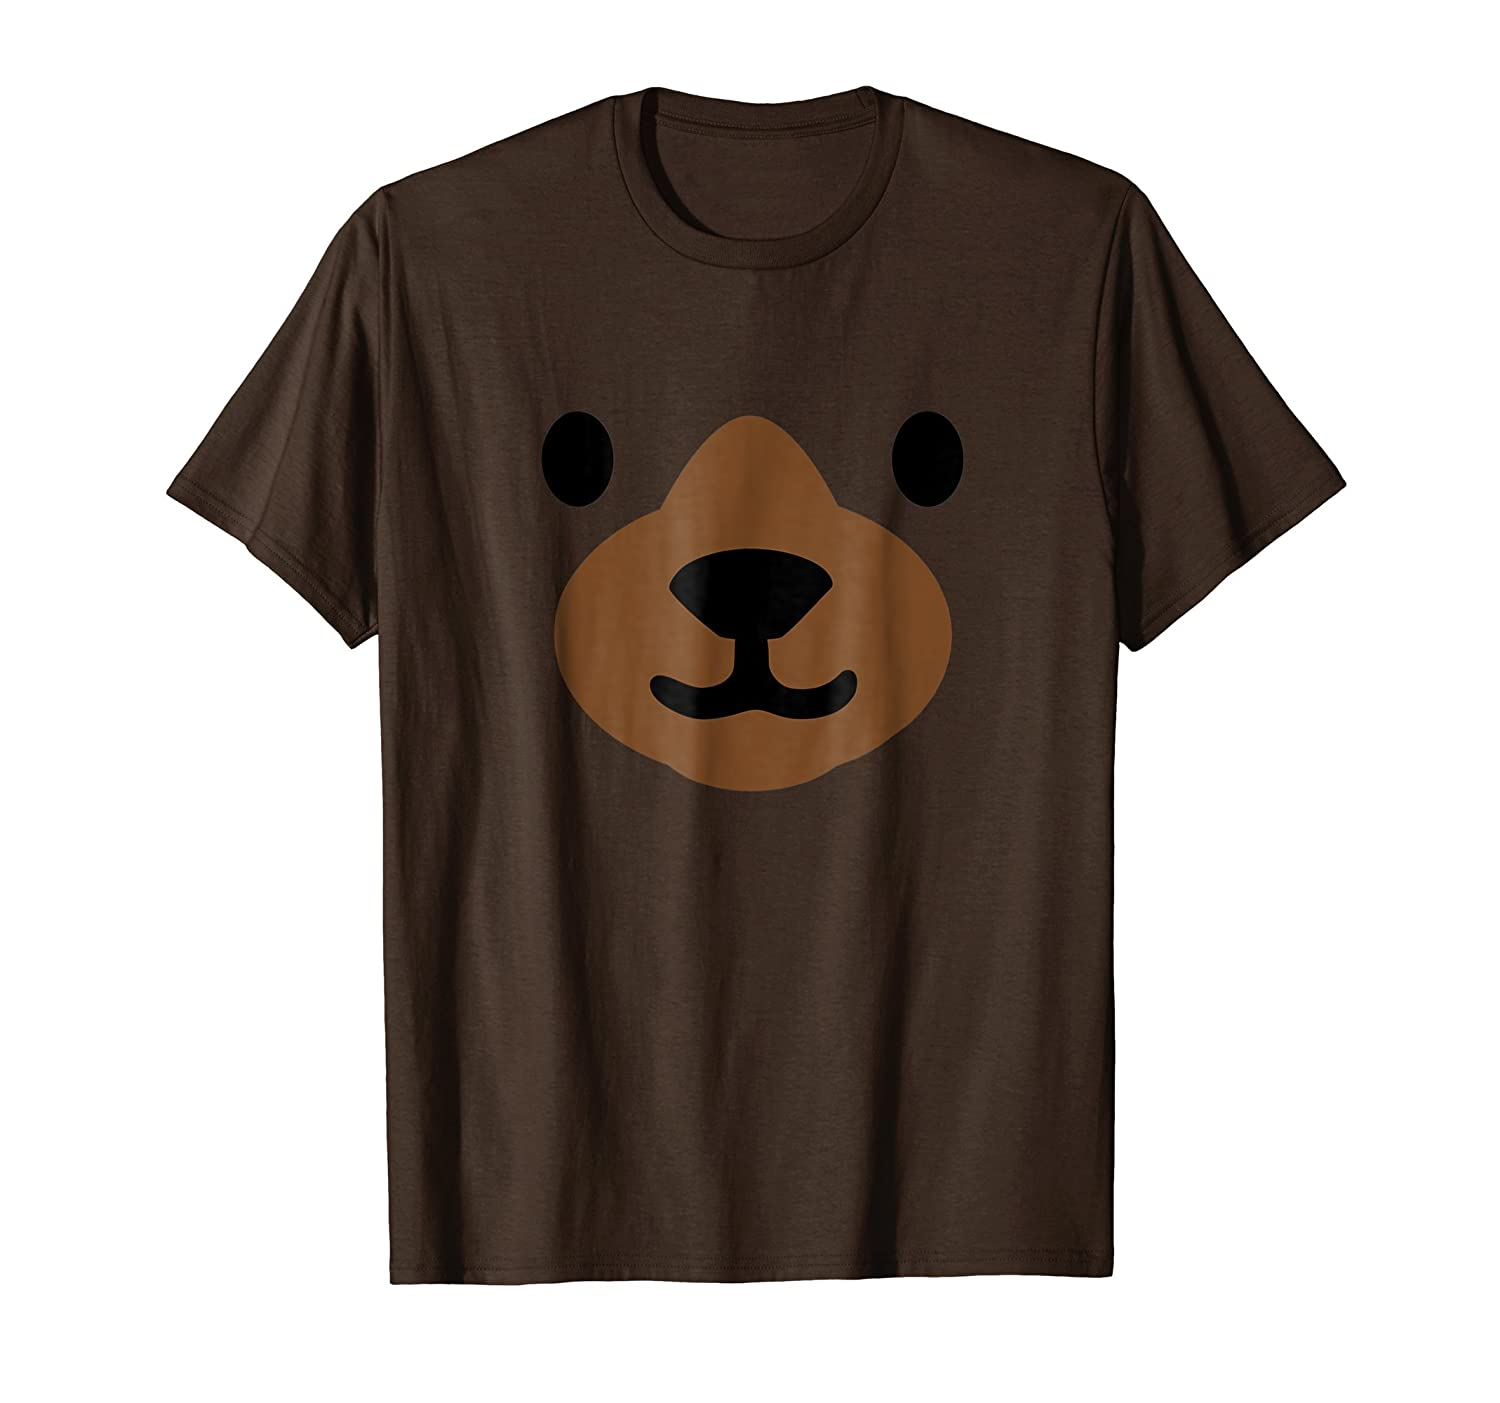 Bear Face Halloween Costume Shirt Funny-Teesml